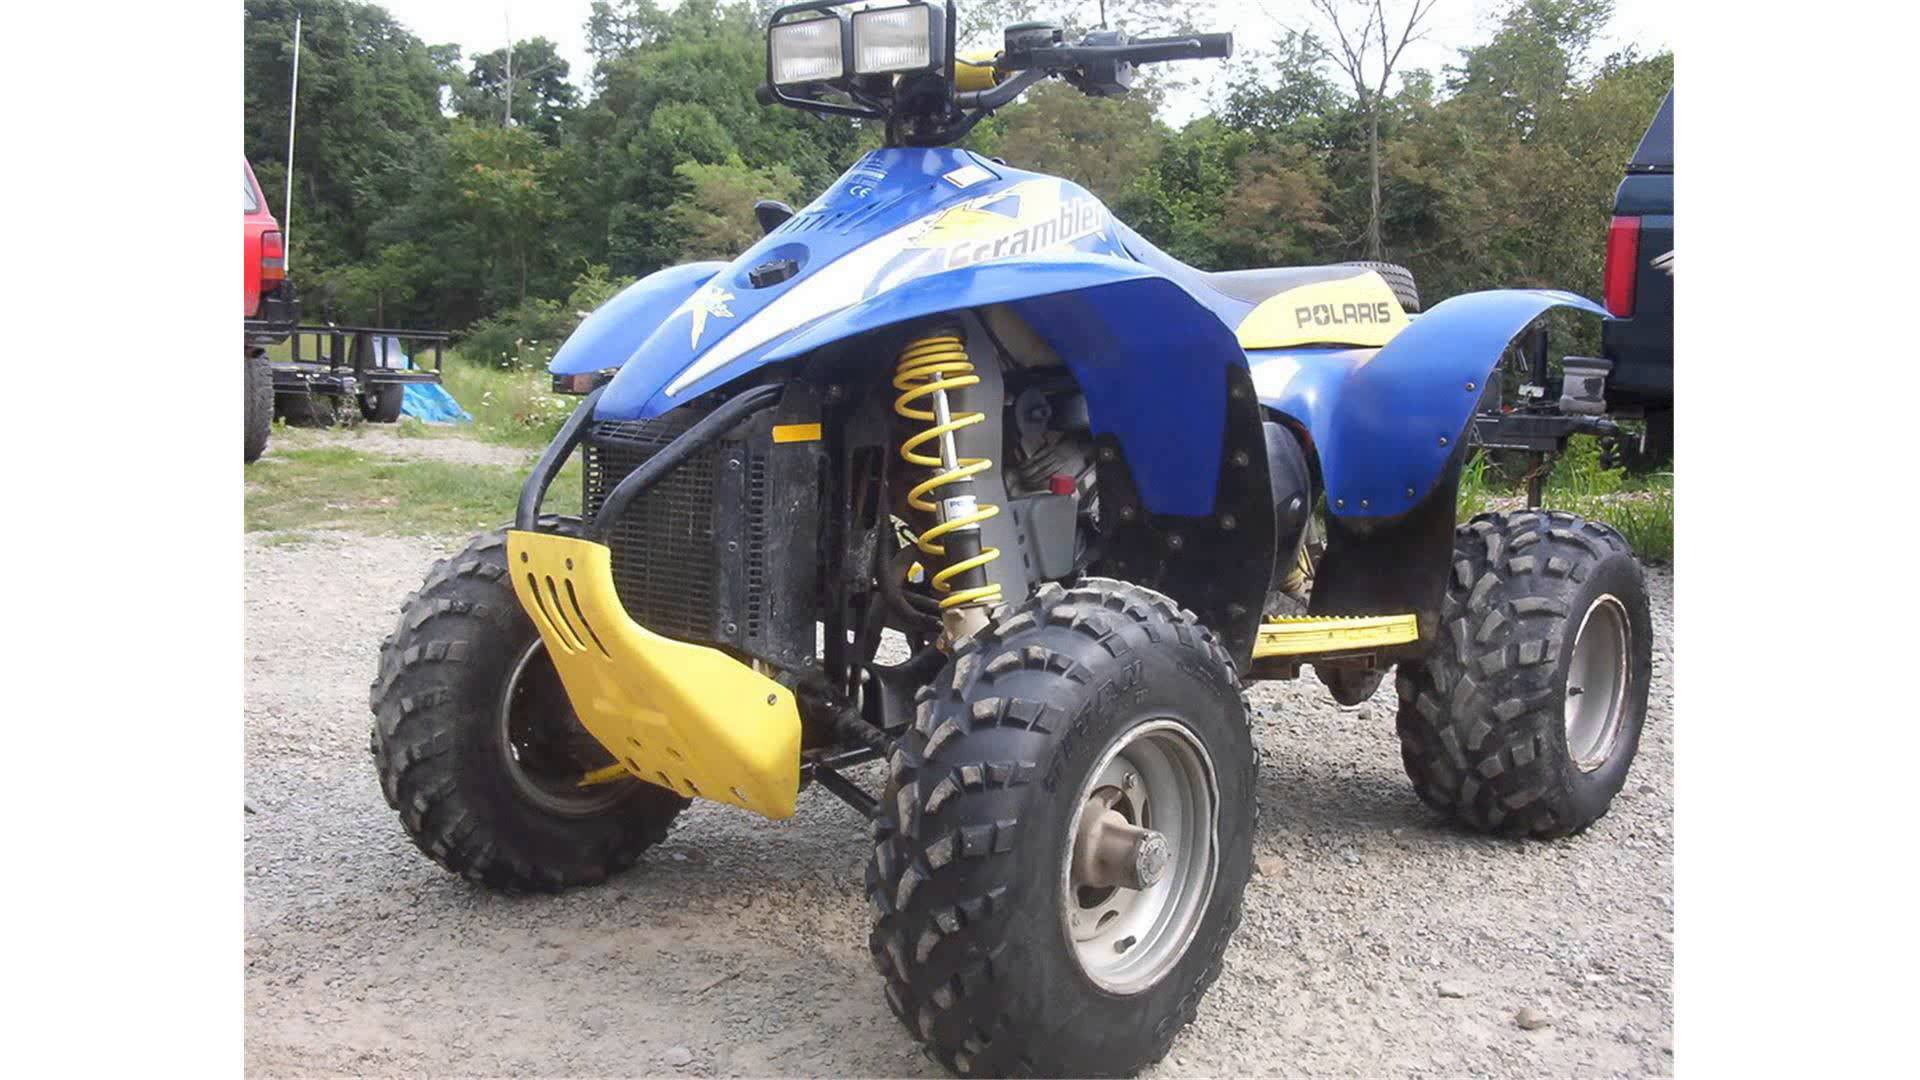 Polaris Scrambler 400/4x4 2001 images #120991